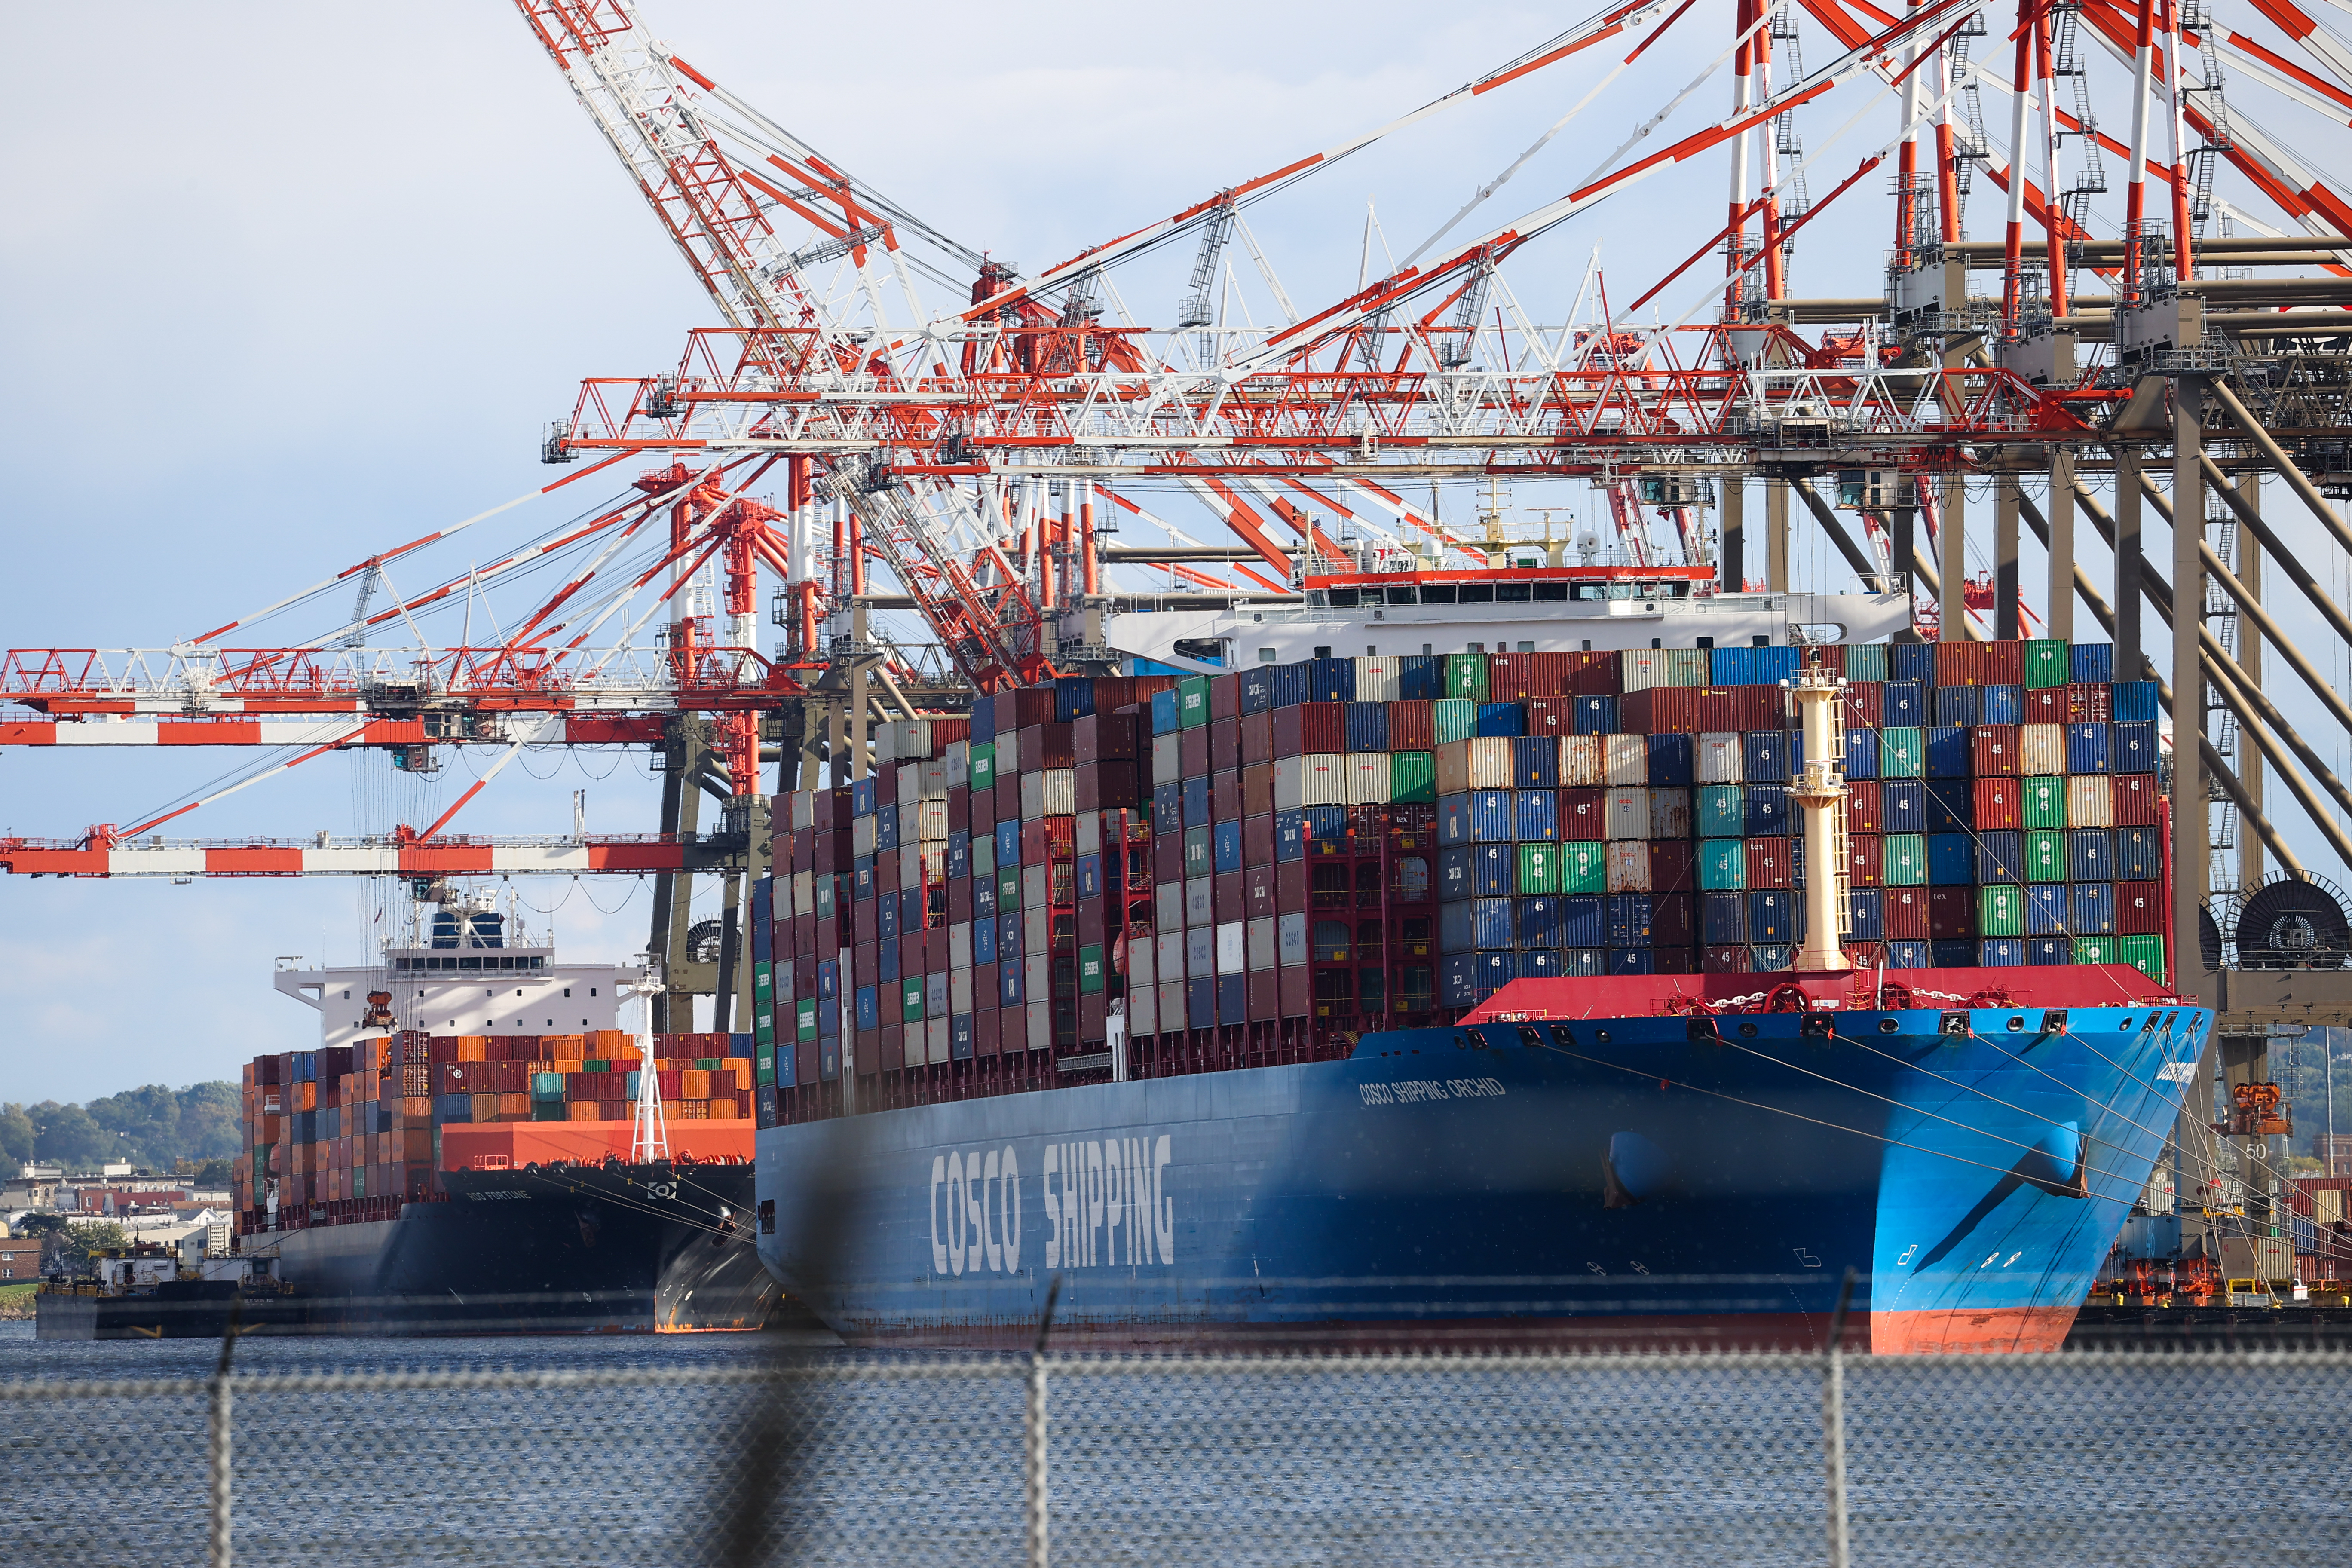 A fully loaded container ship with container cranes overhead is docked at a port in Newark, New Jersey.